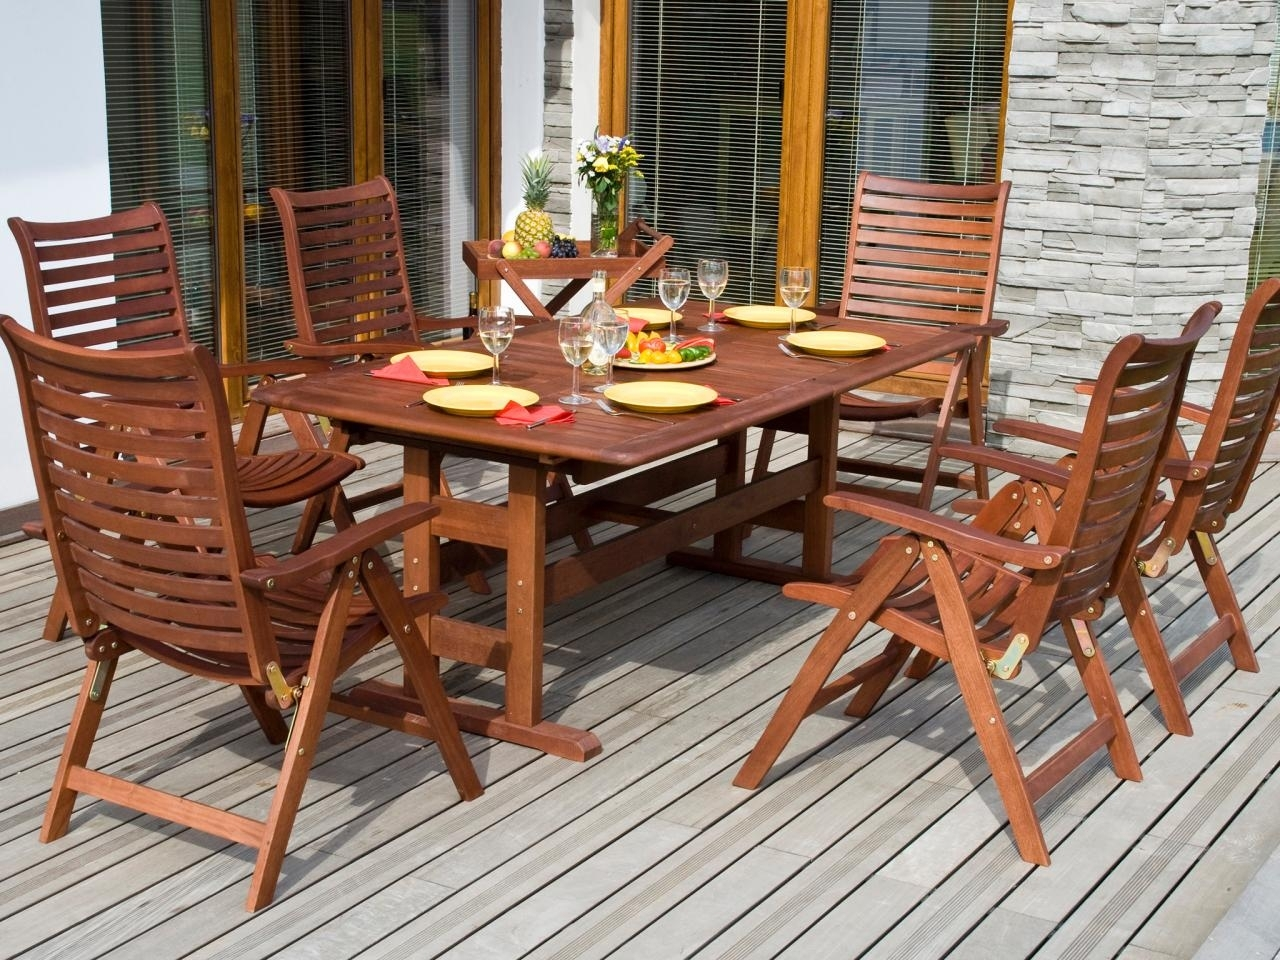 Image of: Tips For Refinishing Wooden Outdoor Furniture Diy For Outdoor Teak Wood Furniture Ways To Keep Outdoor Teak Wood Furniture